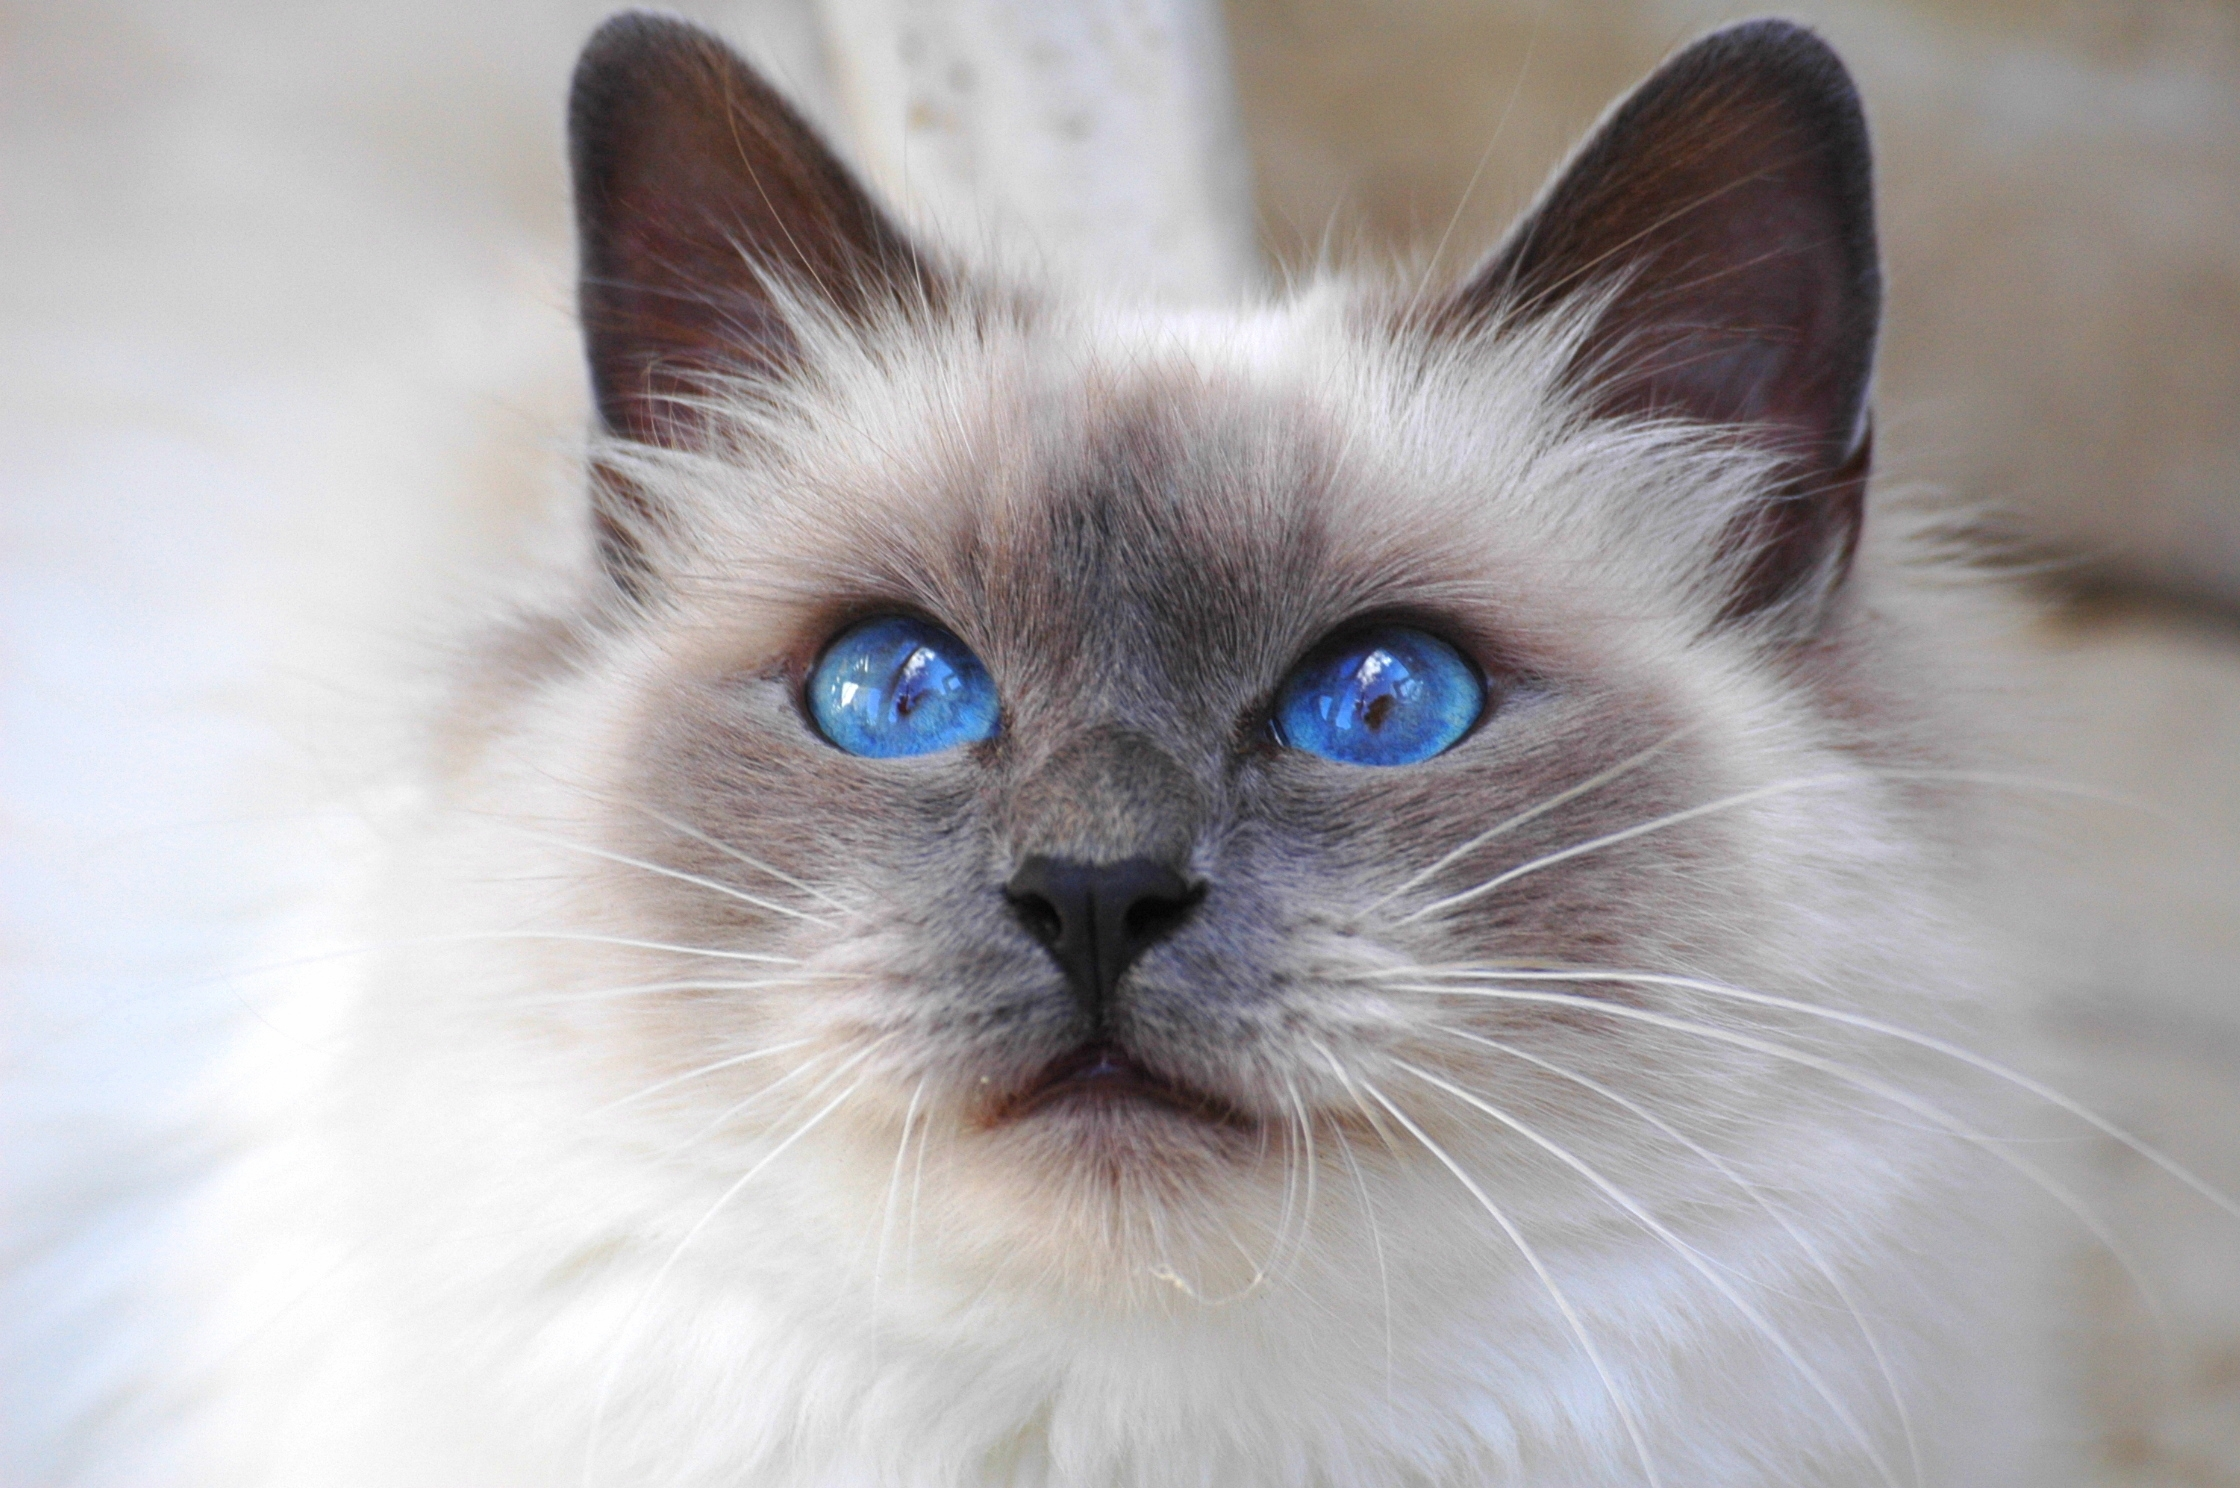 104746 download wallpaper Cat, Animals, Fluffy, Muzzle, Color, Sight, Opinion, Nice, Sweetheart, Blue Eyed, Blue-Eyed screensavers and pictures for free